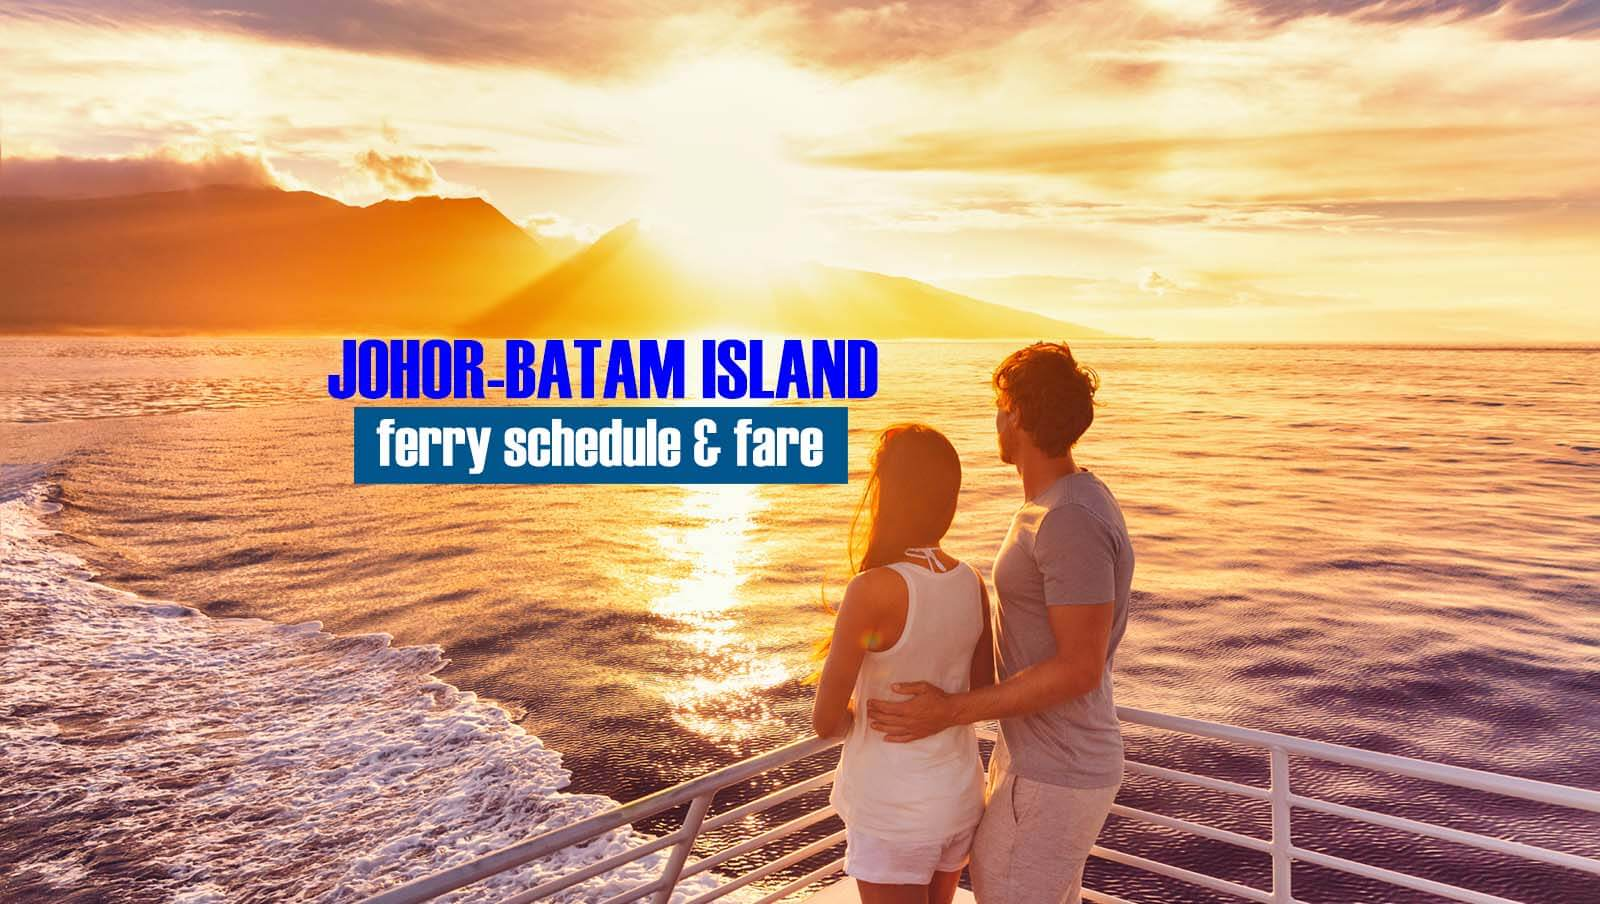 Johor Bahru to Batam Island: 2020 Ferry Schedule and Fare